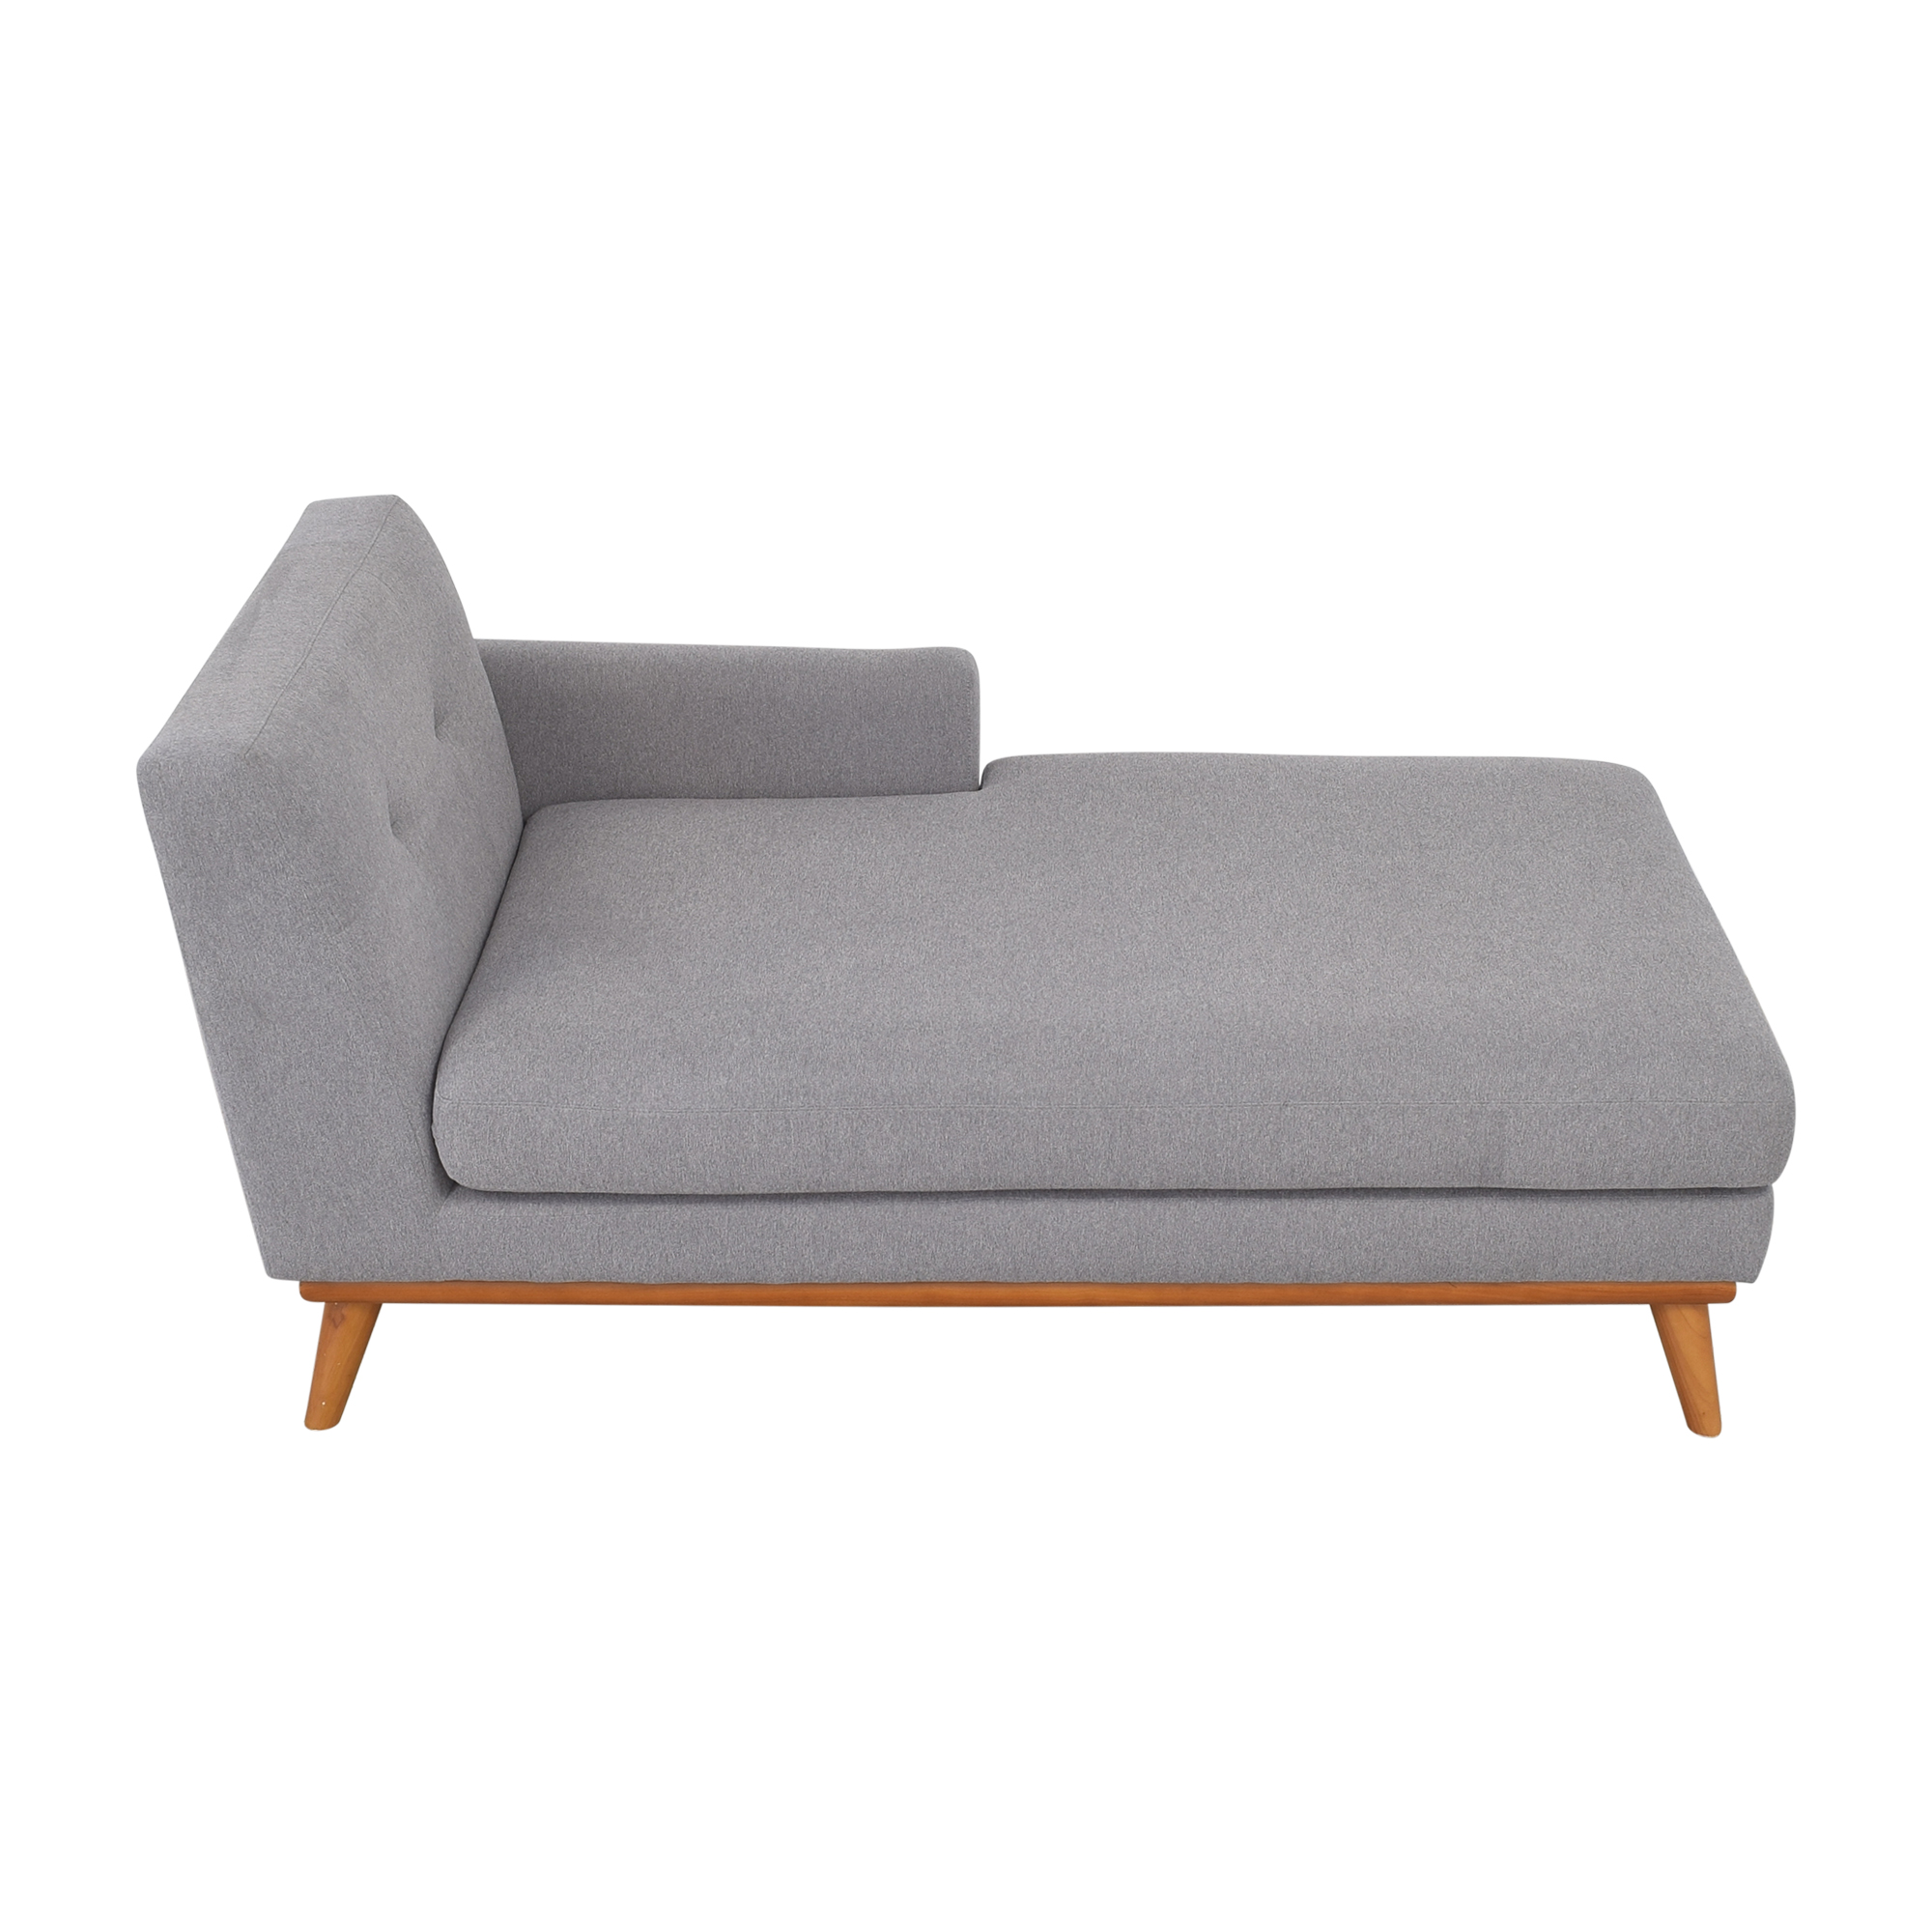 Modway Modway Engage Beige Right-Facing Chaise price